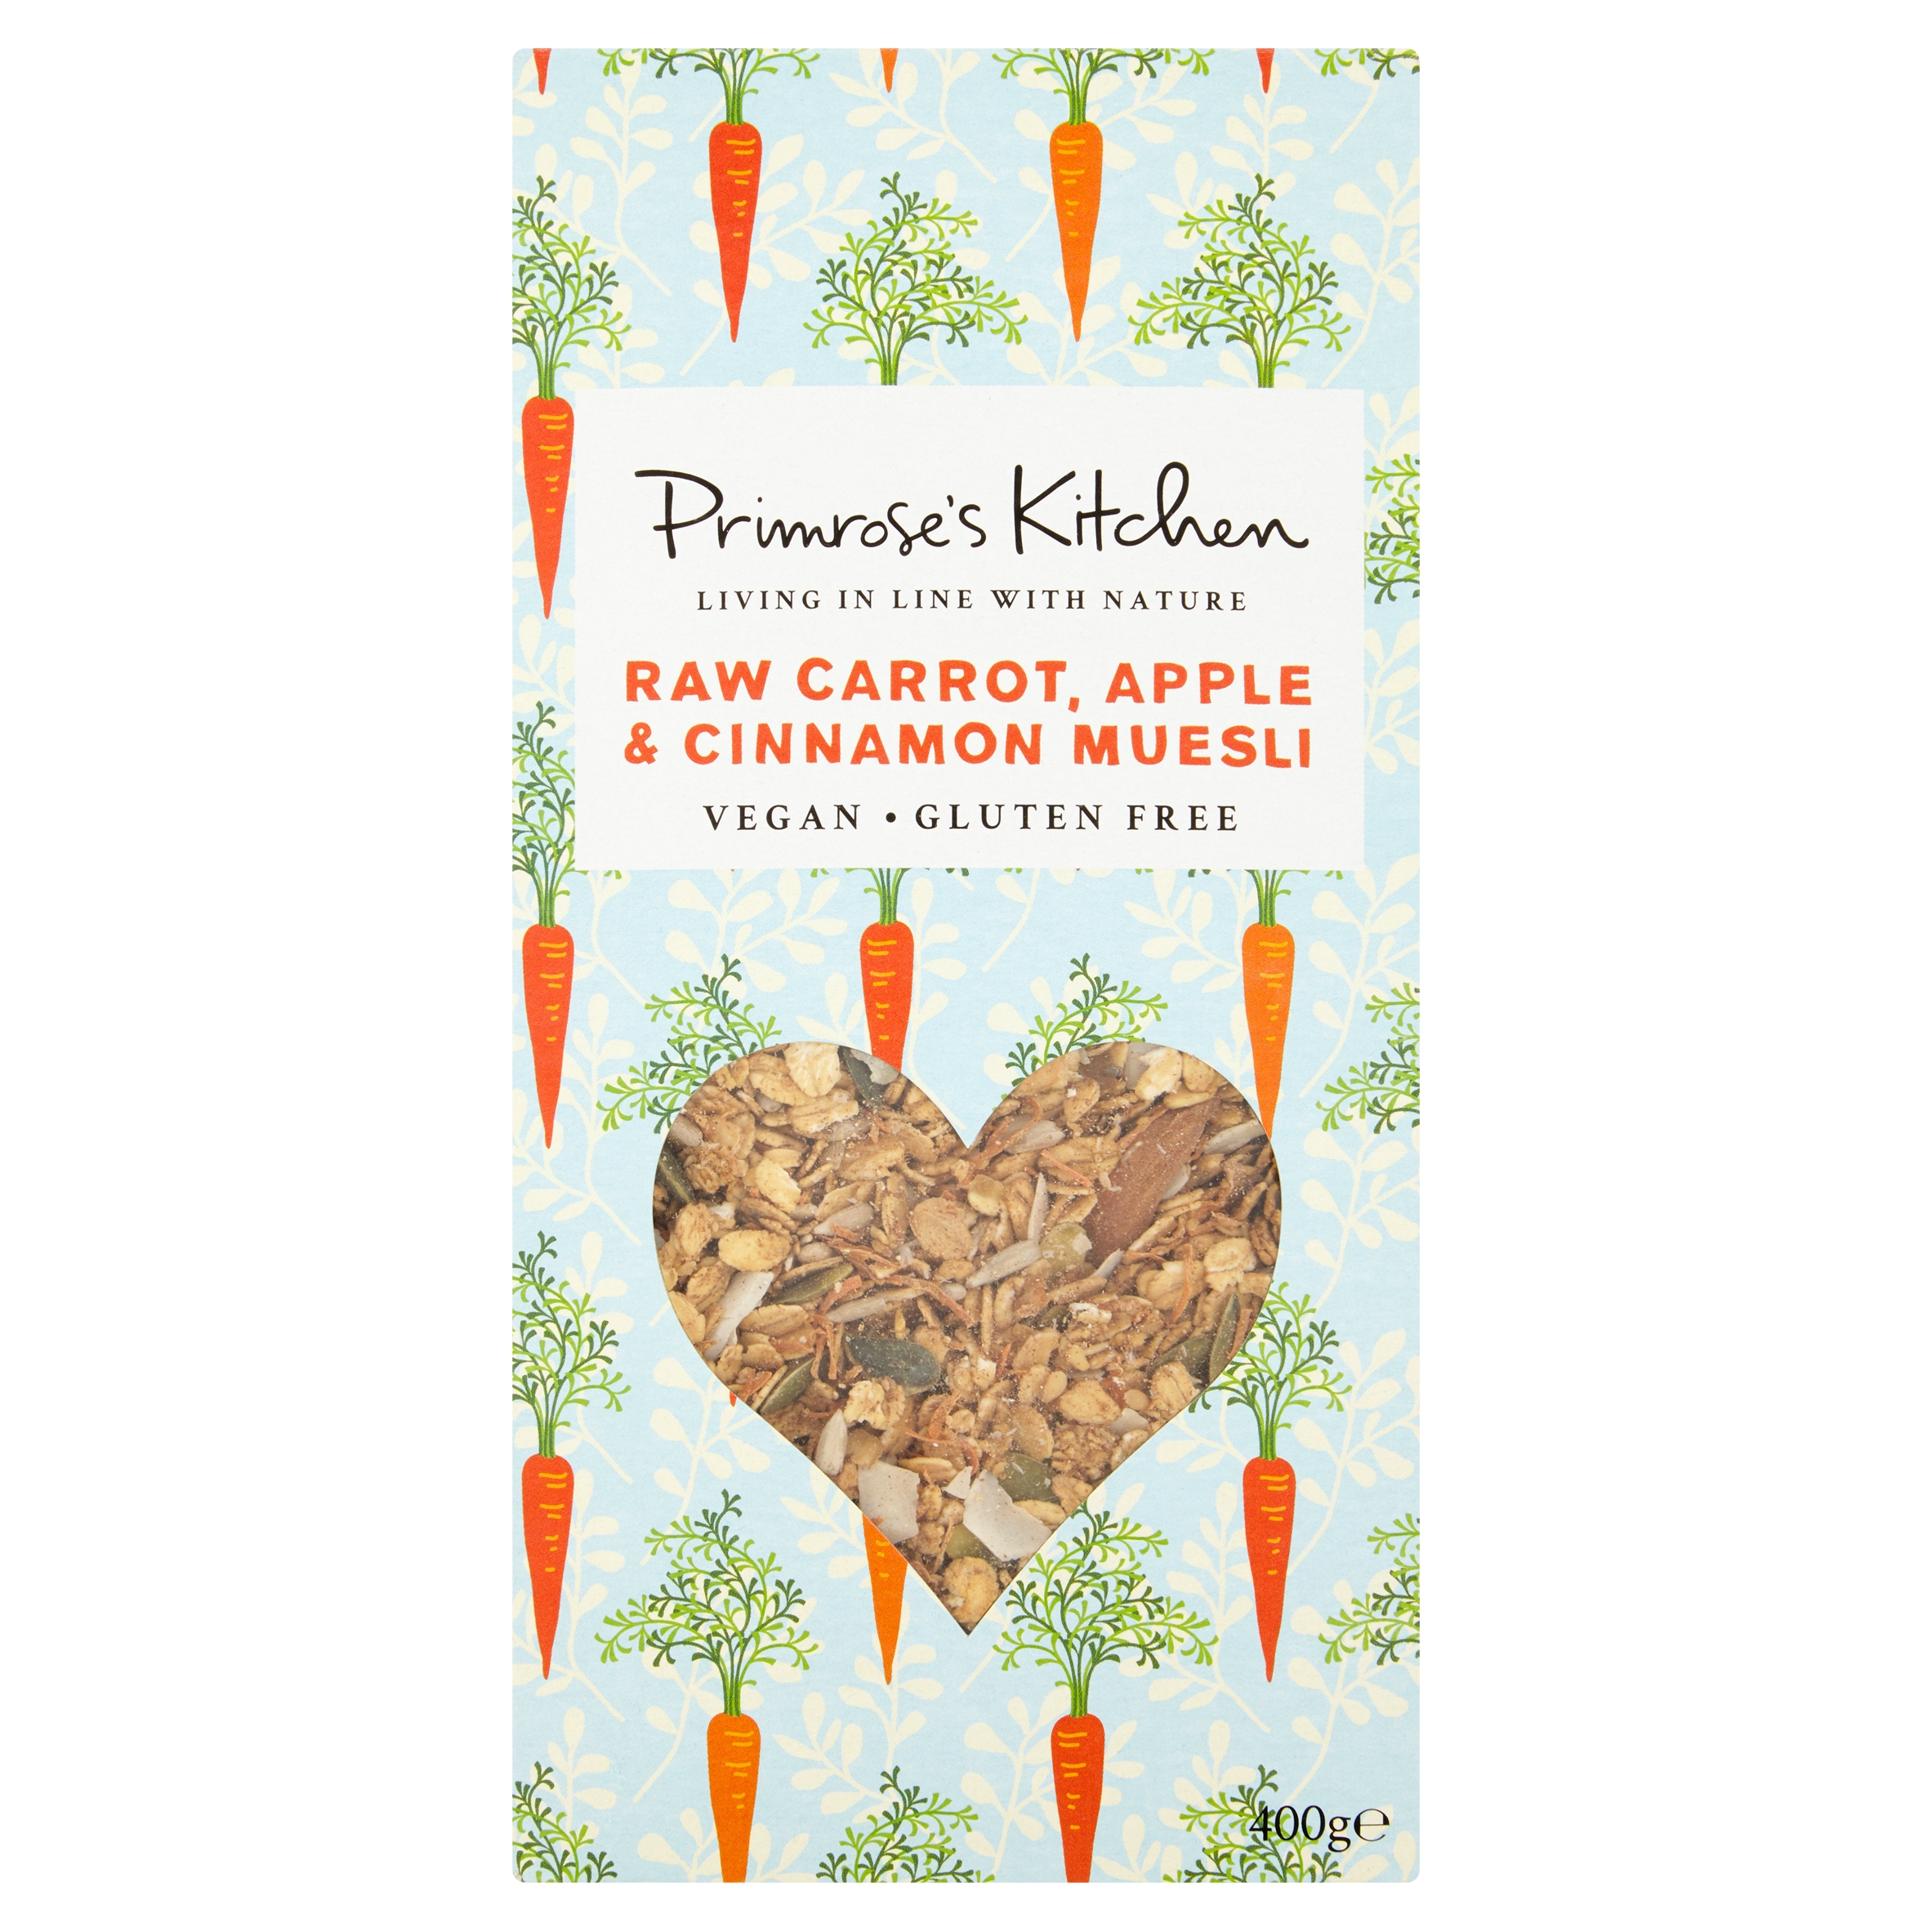 Raw Carrot, Apple & Cinnamon Muesli 400g